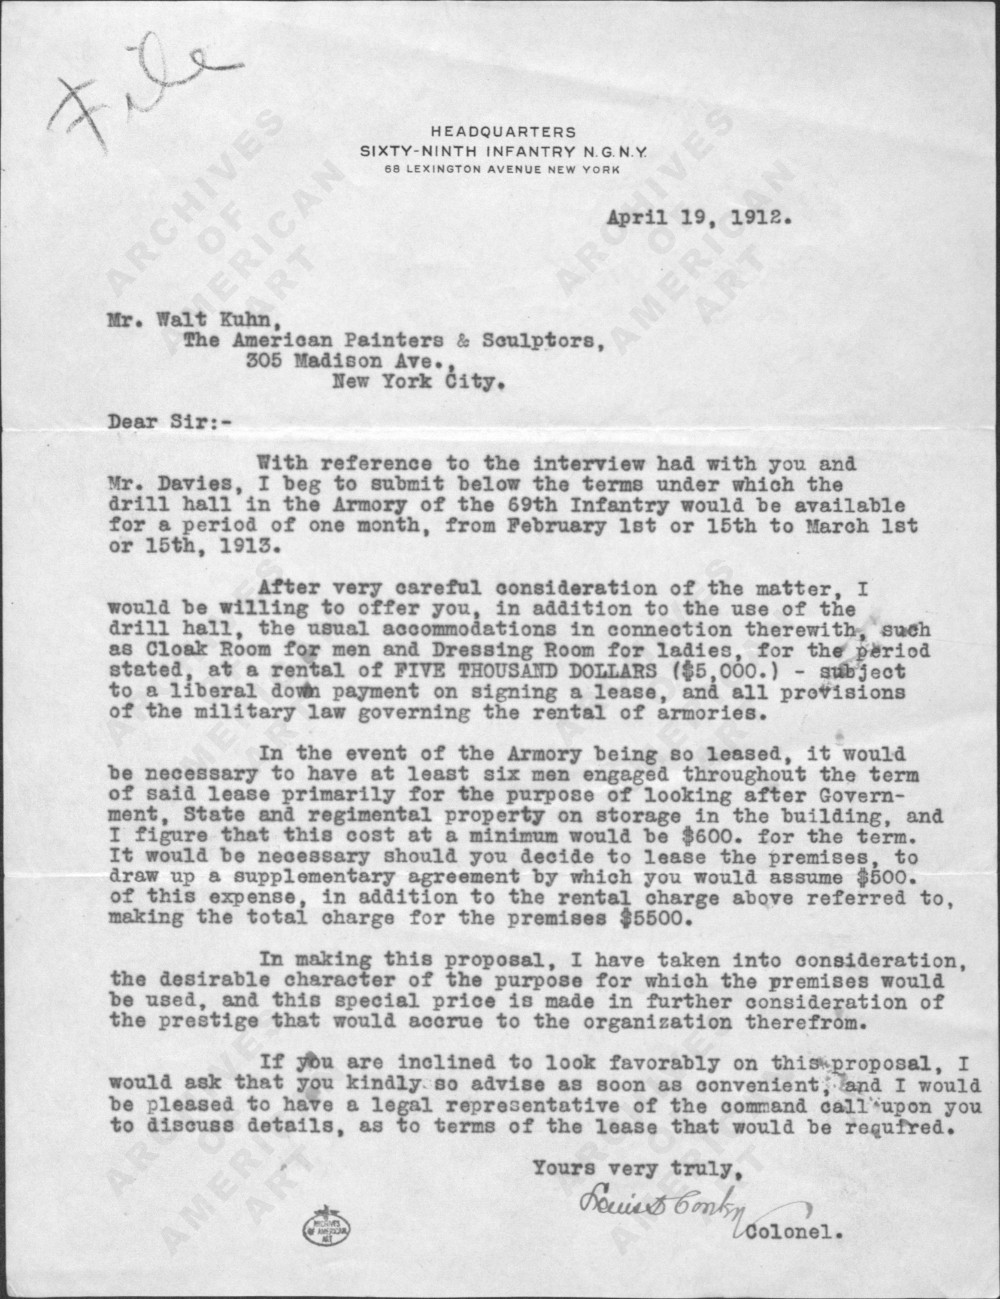 Letter from Colonel Louis Conley to Walt Kuhn, April 19, 1912